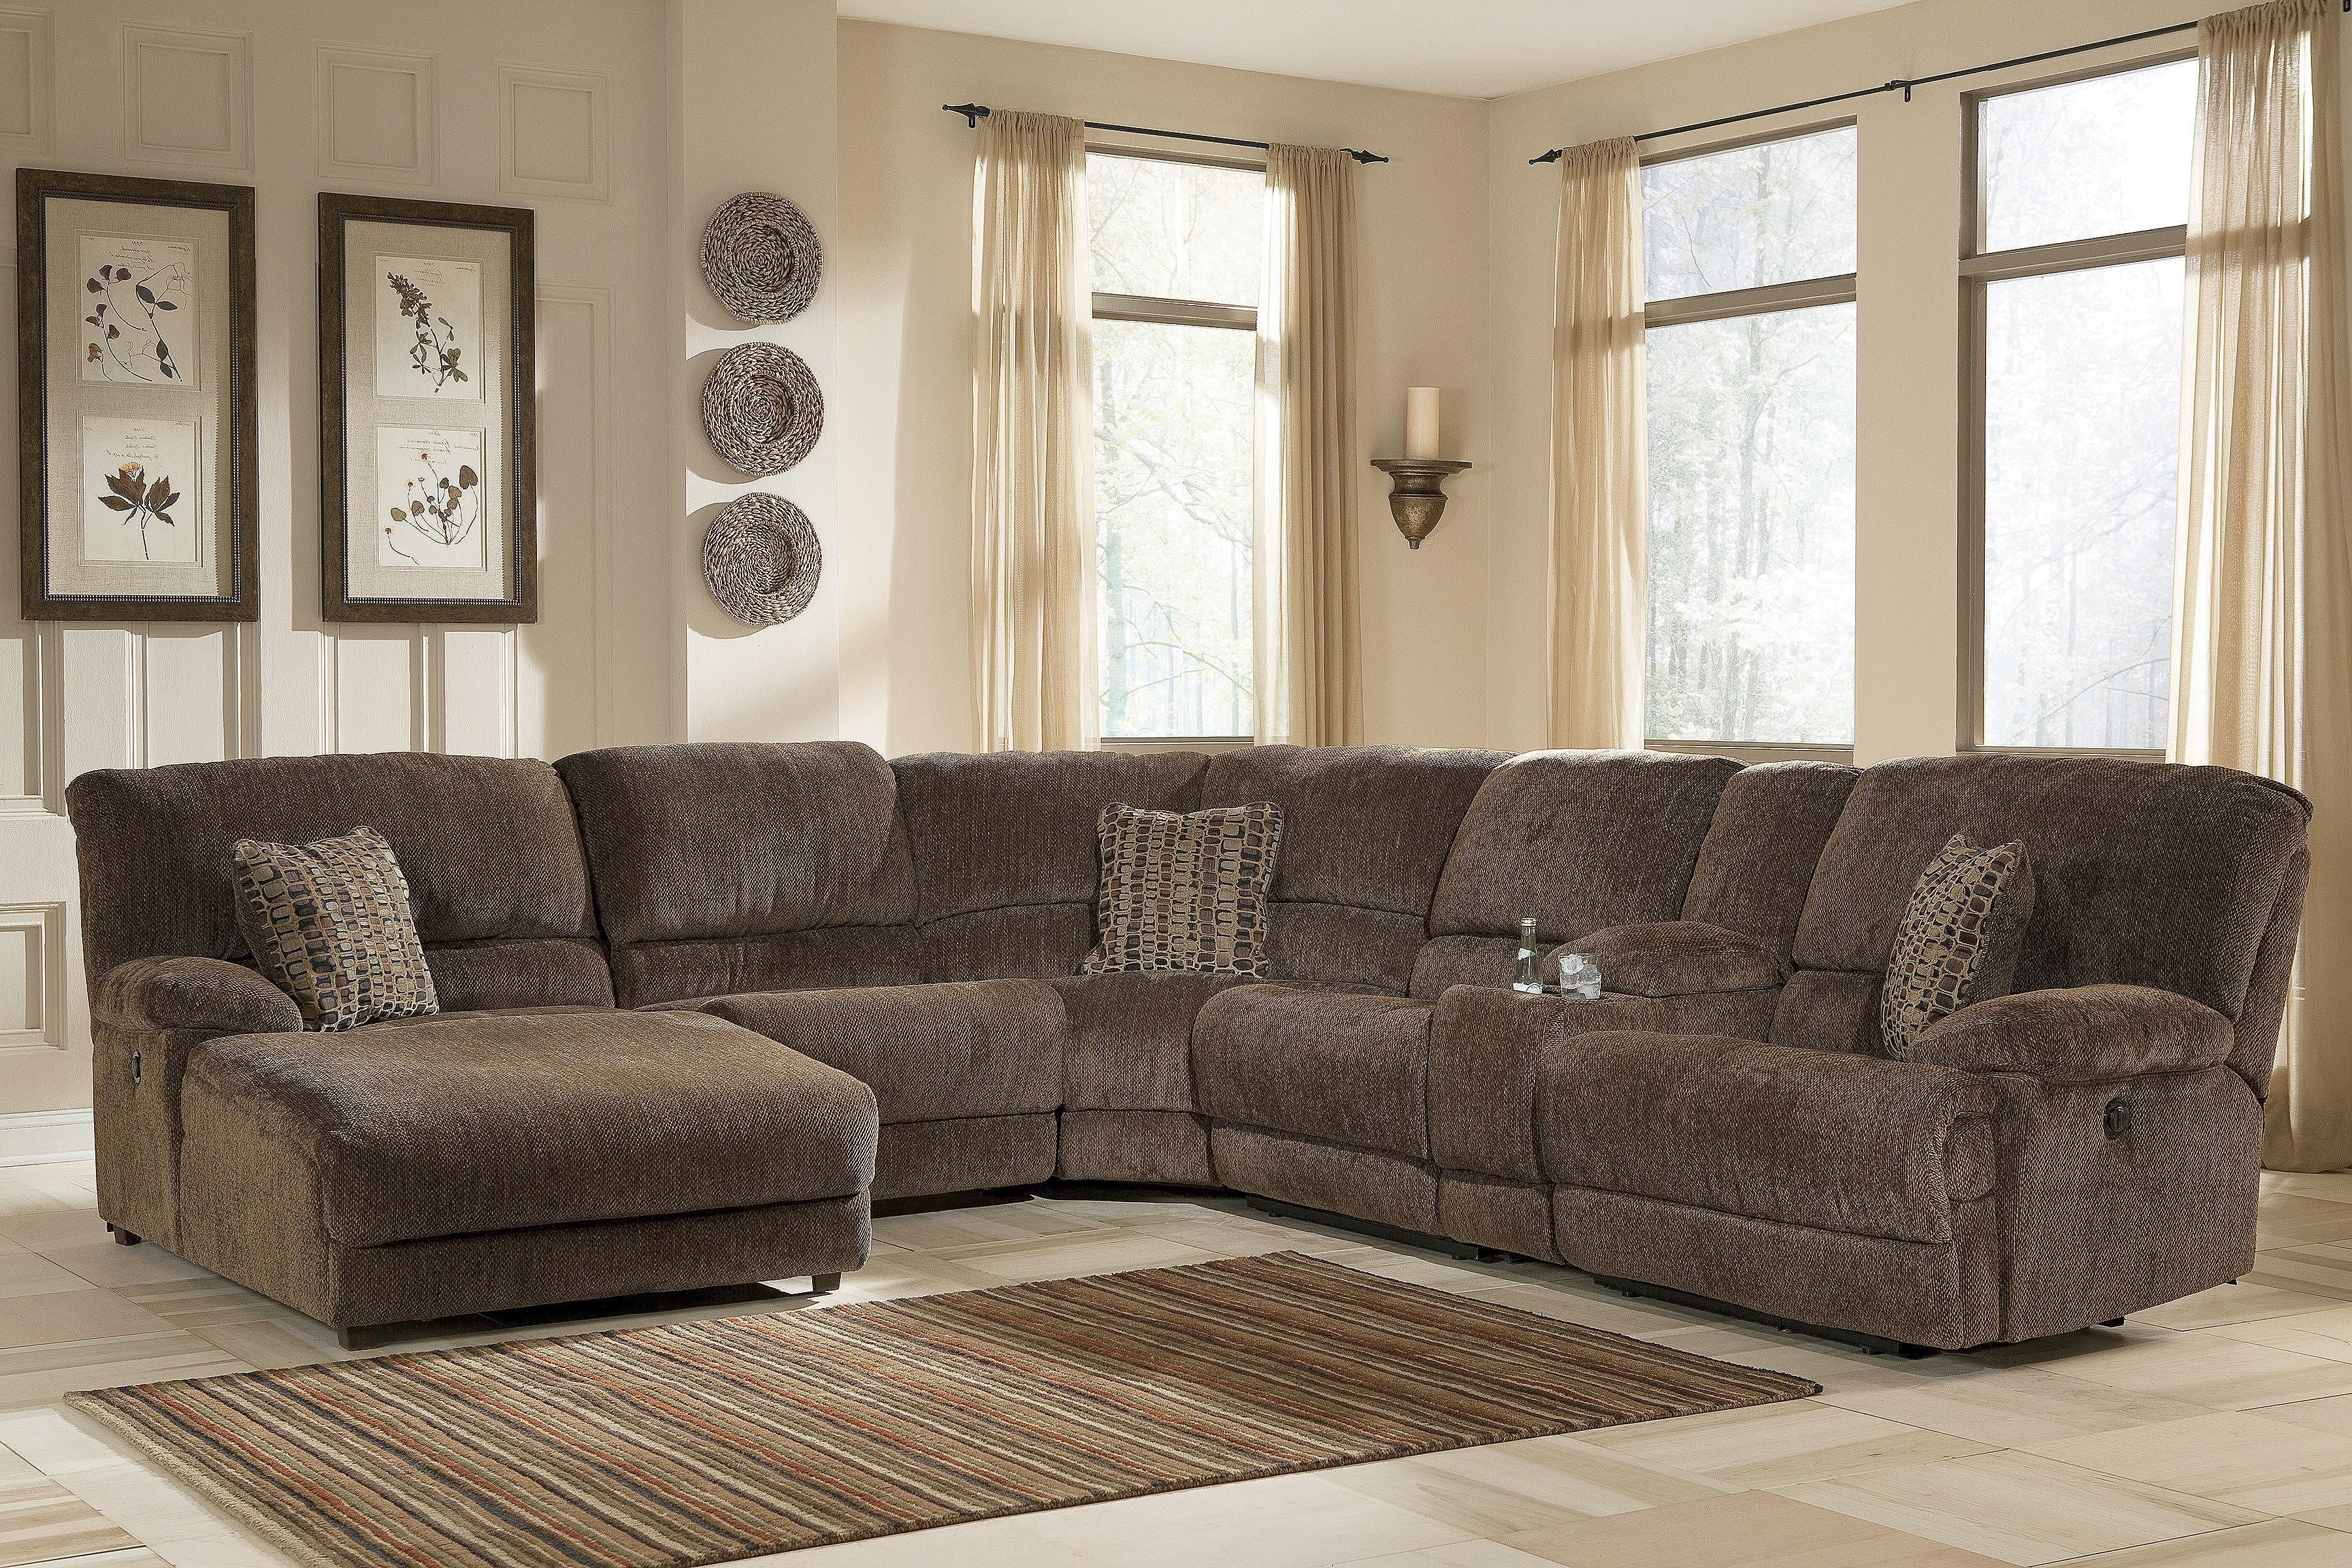 Elegant Small Living Room Ideas Philippines Sectional Sofa With Recliner Brown Sectional Sofa Sectional Sofa With Chaise